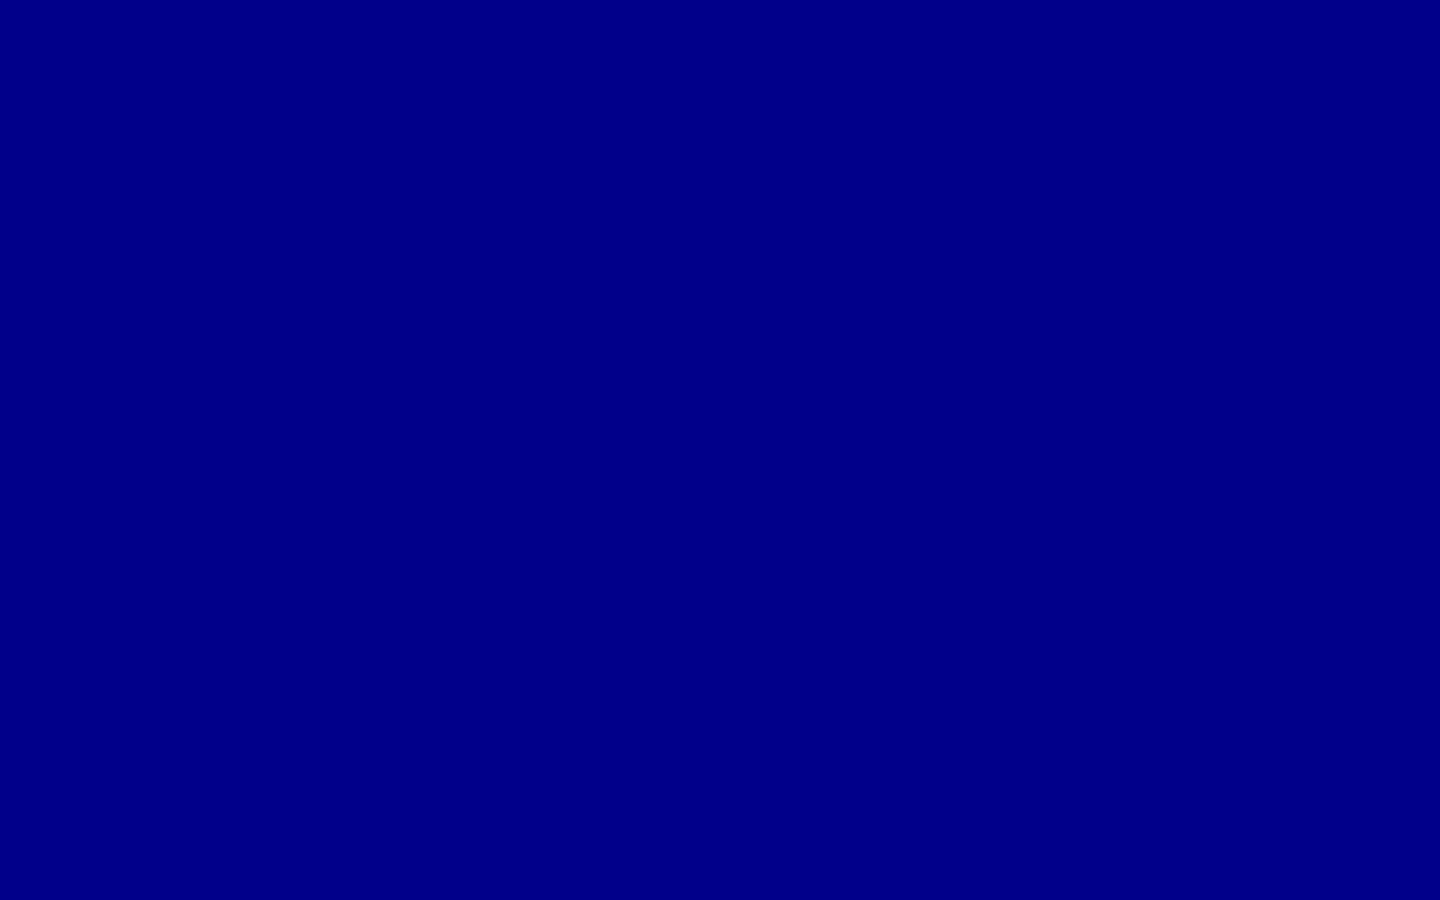 1440x900 Dark Blue Solid Color Background